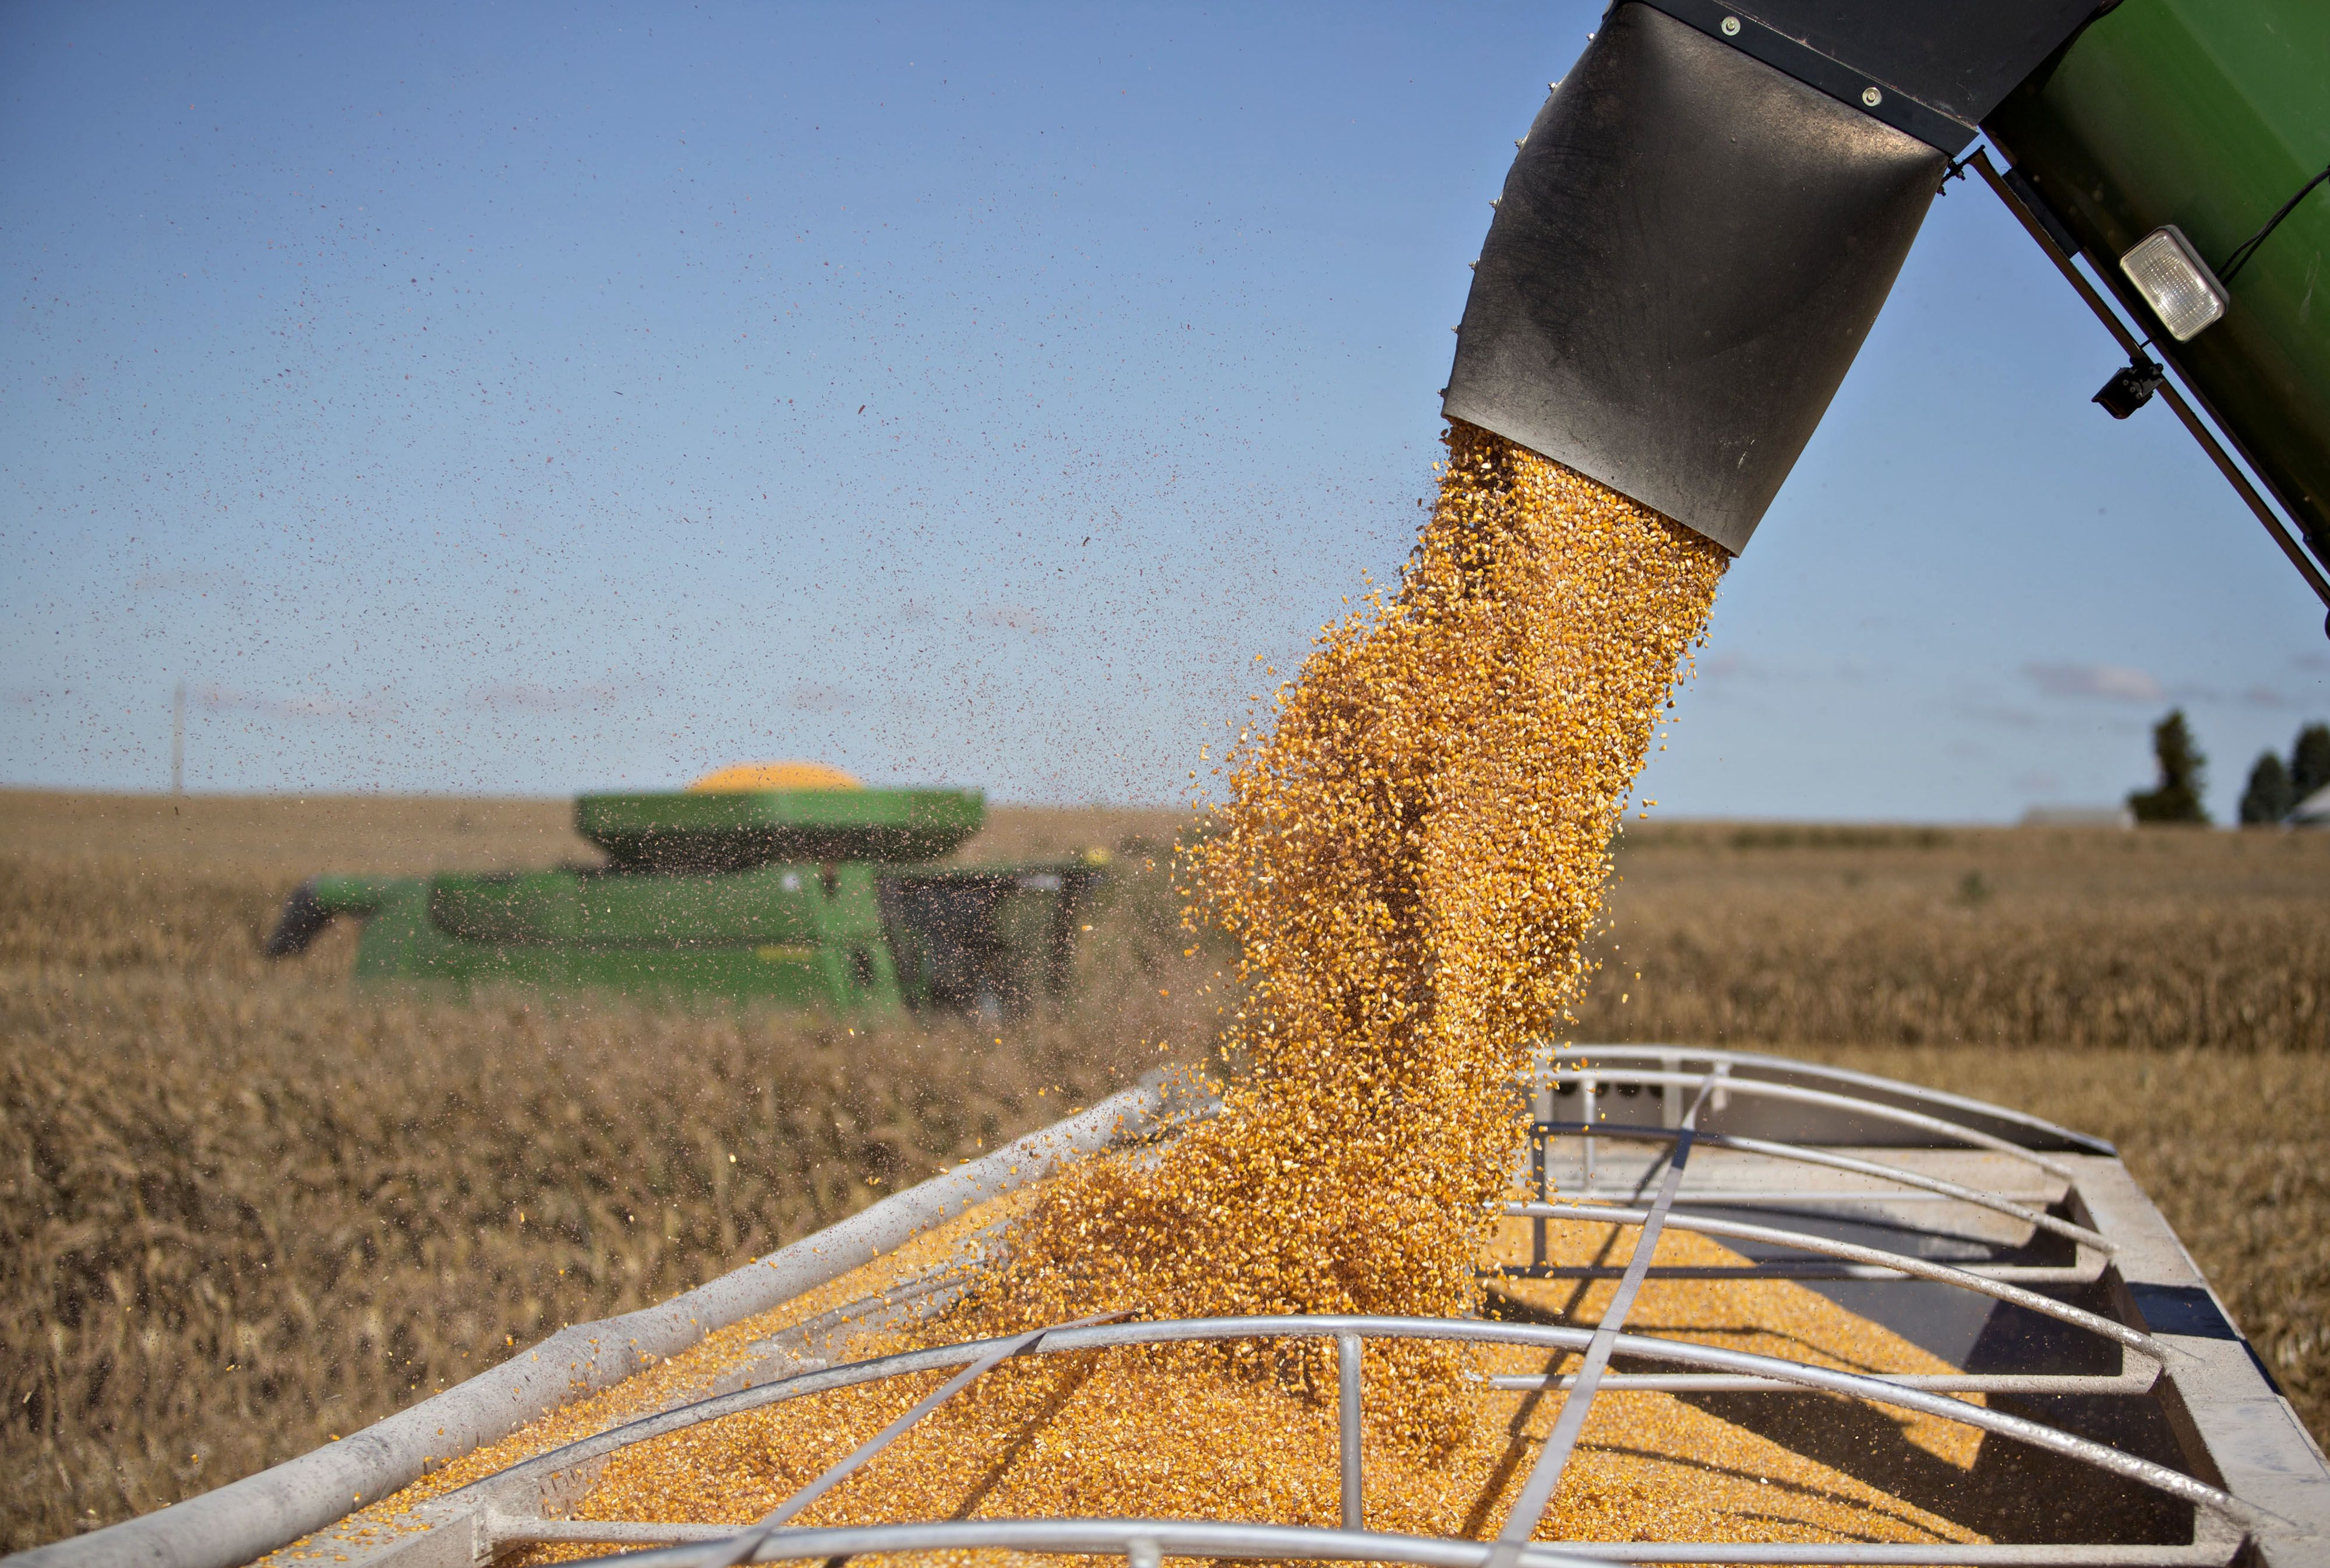 Corn futures surge, bringing May gain to 20% as soft commotities rally on Midwest flooding